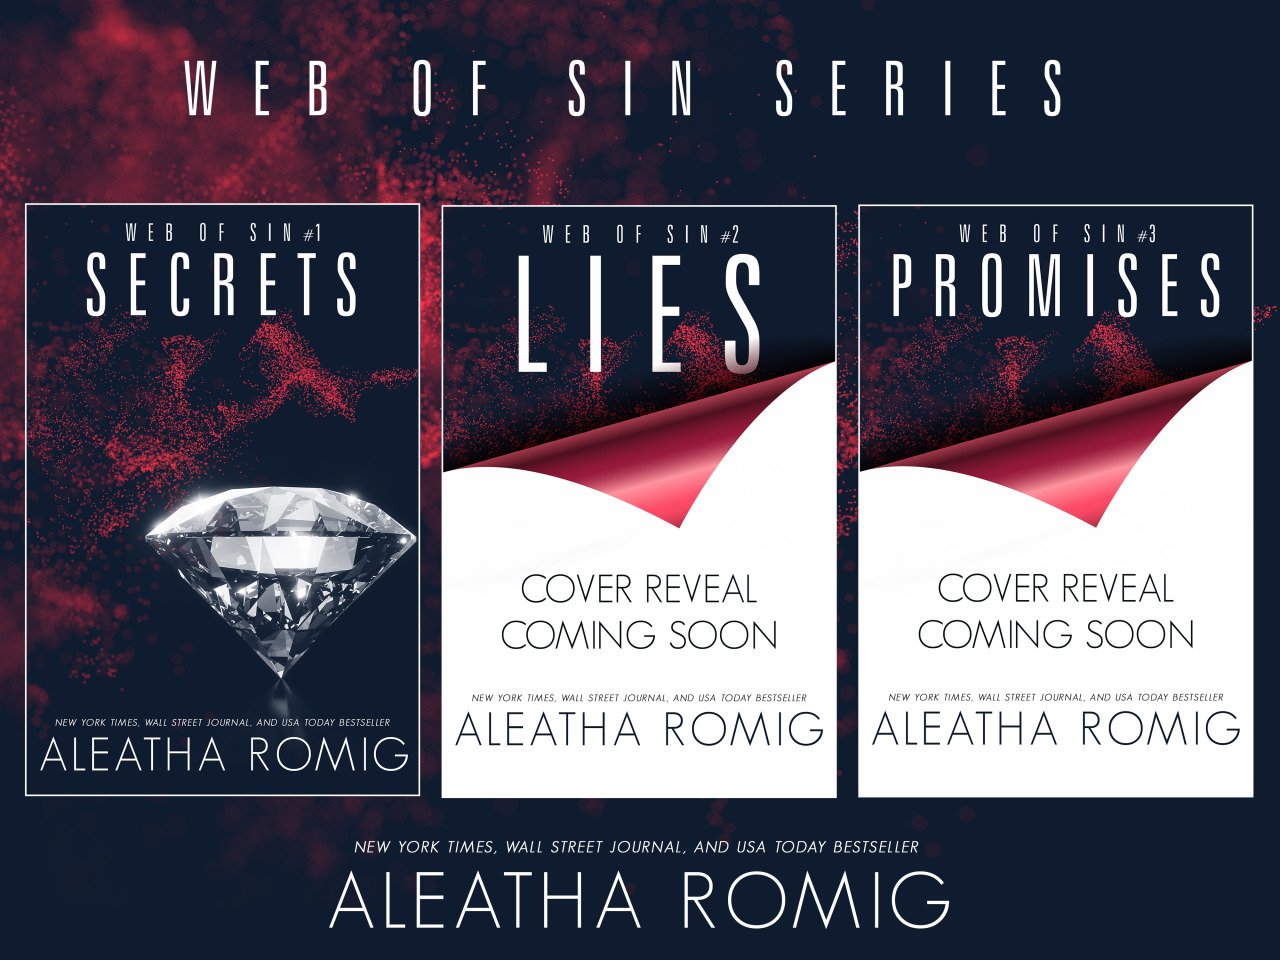 Amazon Uk Camano Island Books Are Love Cover Reveal Secrets By Aleatha Romig